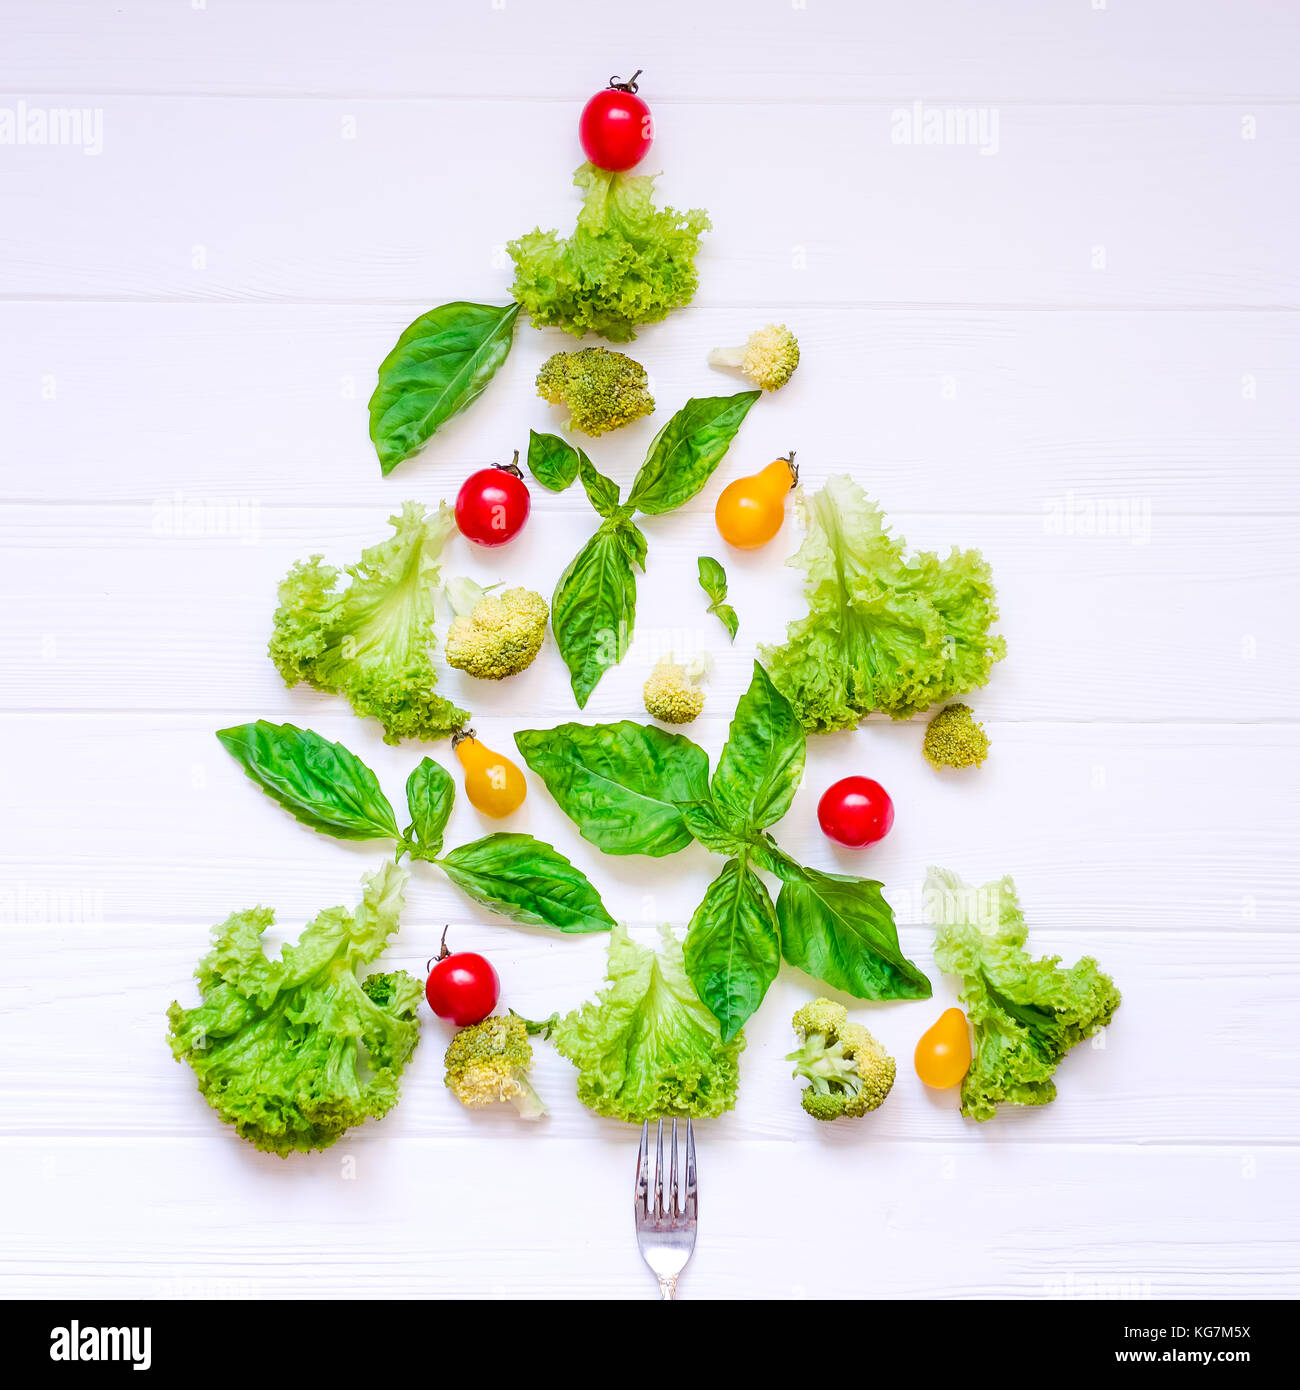 1a6eda3185 Healthy new year concept - Collection of fresh organic vegetables ...